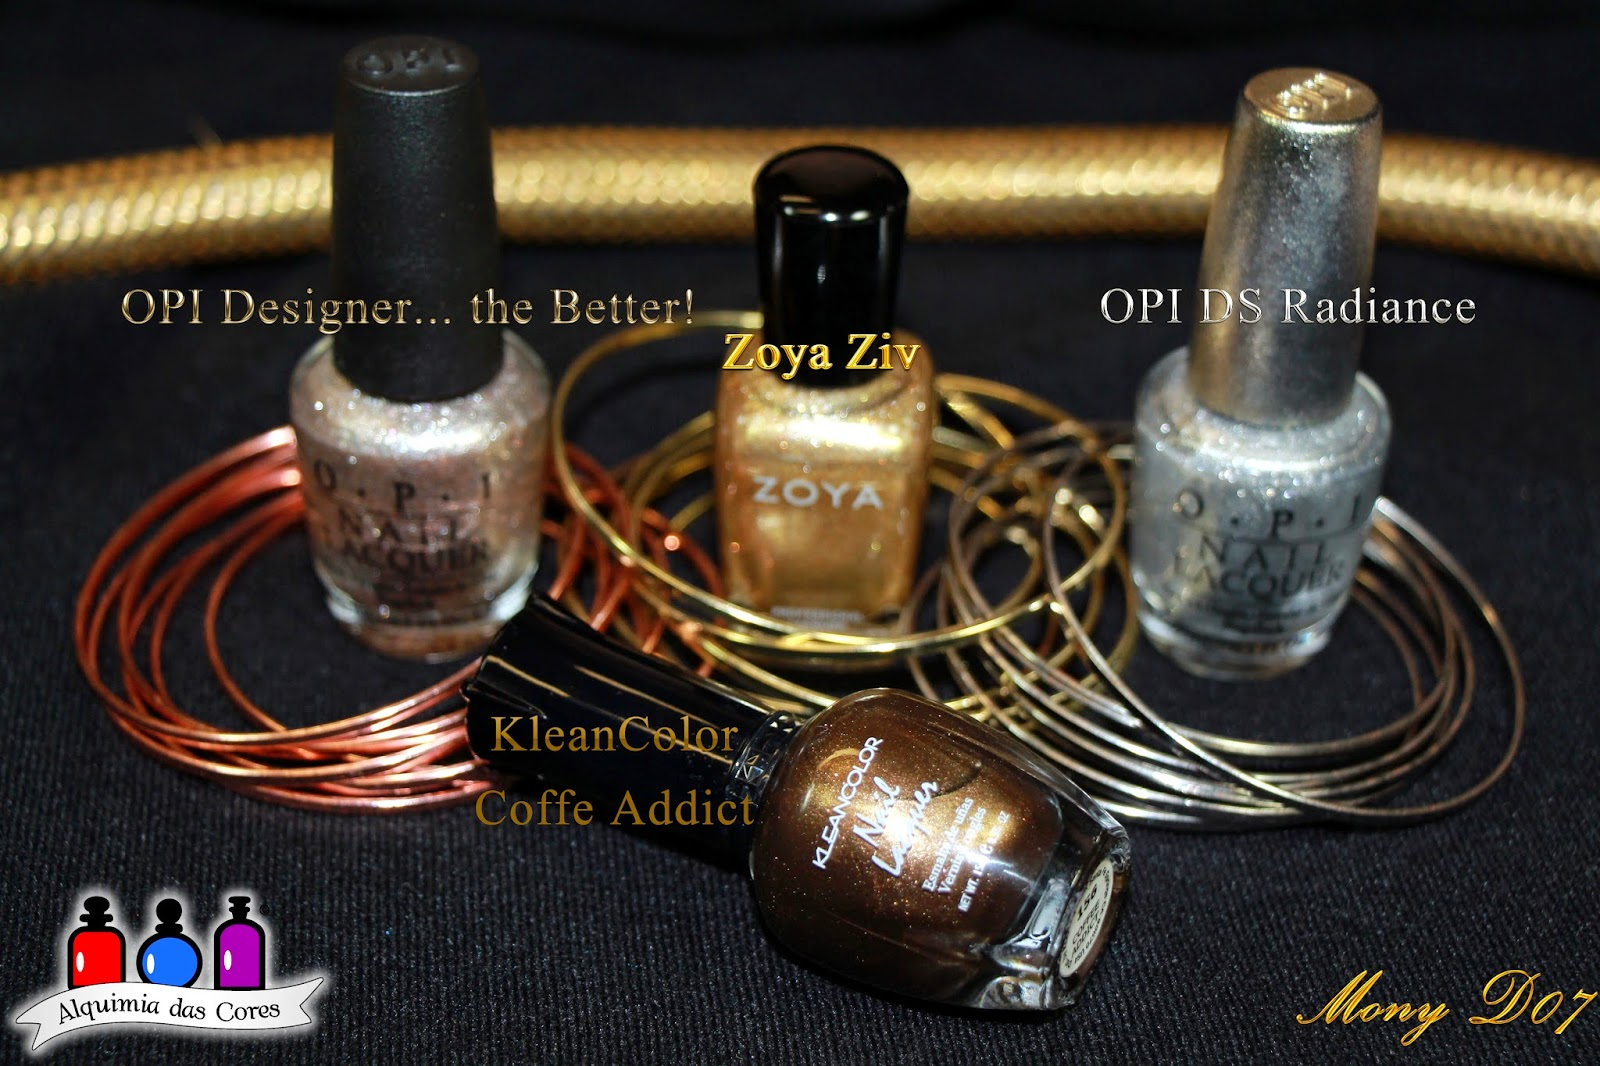 OPI, Designer... the Better!, Zoya, Ziv, DS RADIANCE, ouro branco, prata, ouro, dourado, ouvo vermelho, Nails Craze NC04, Sugar Bubbles SBS 04,  Kleancolor, carimbada, marrom, Coffe Addict, Ano Novo, Degrade, Ninja Polish, Tree of Lights, China Glaze, Def Defyning, Jade is the new Black, Highlight of my Summer, Simone D07, SimoneD07, Mony D07, MonyD07